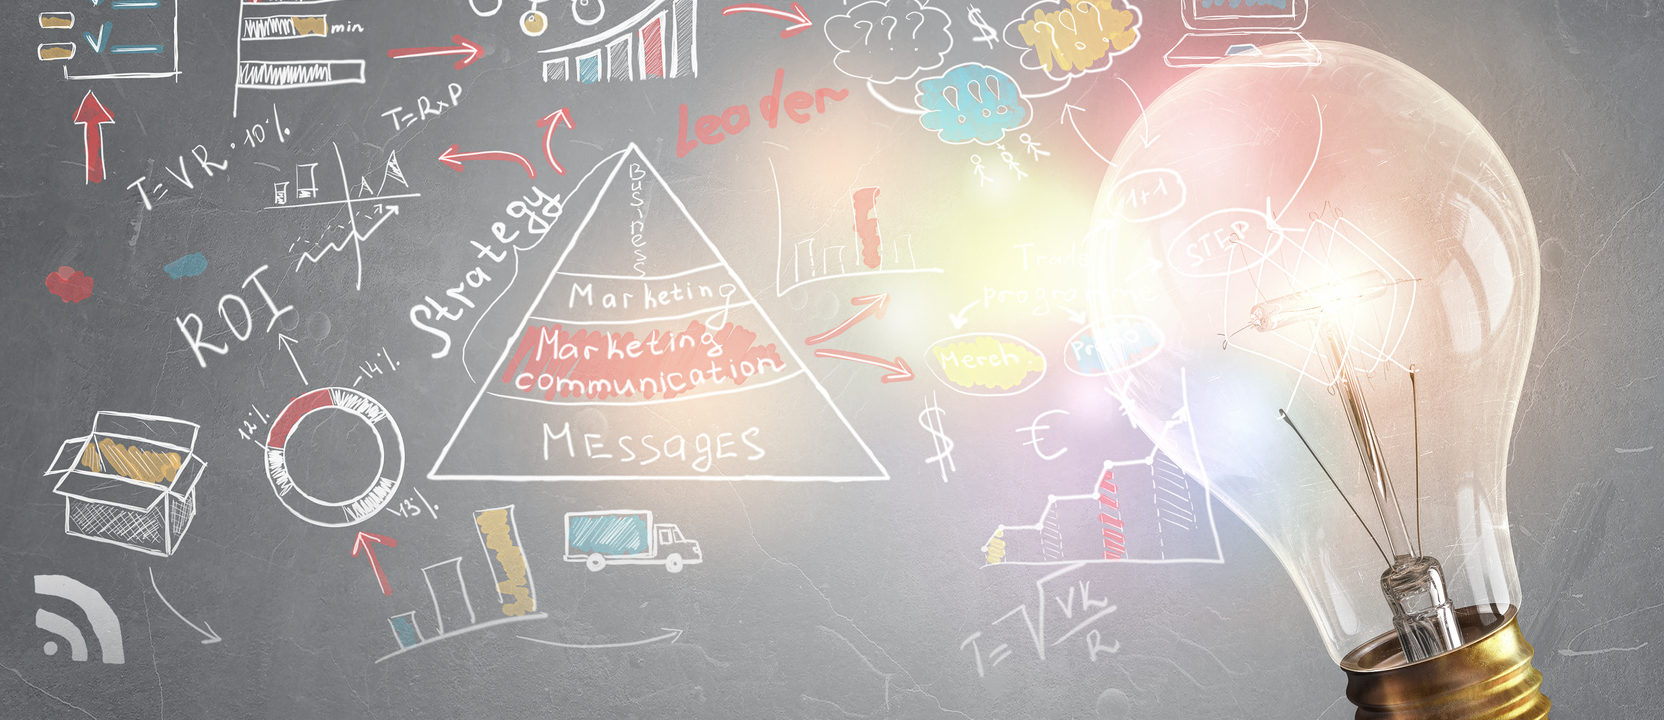 Create a Marketing Plan   Vanguard Communications   The Wired Practice